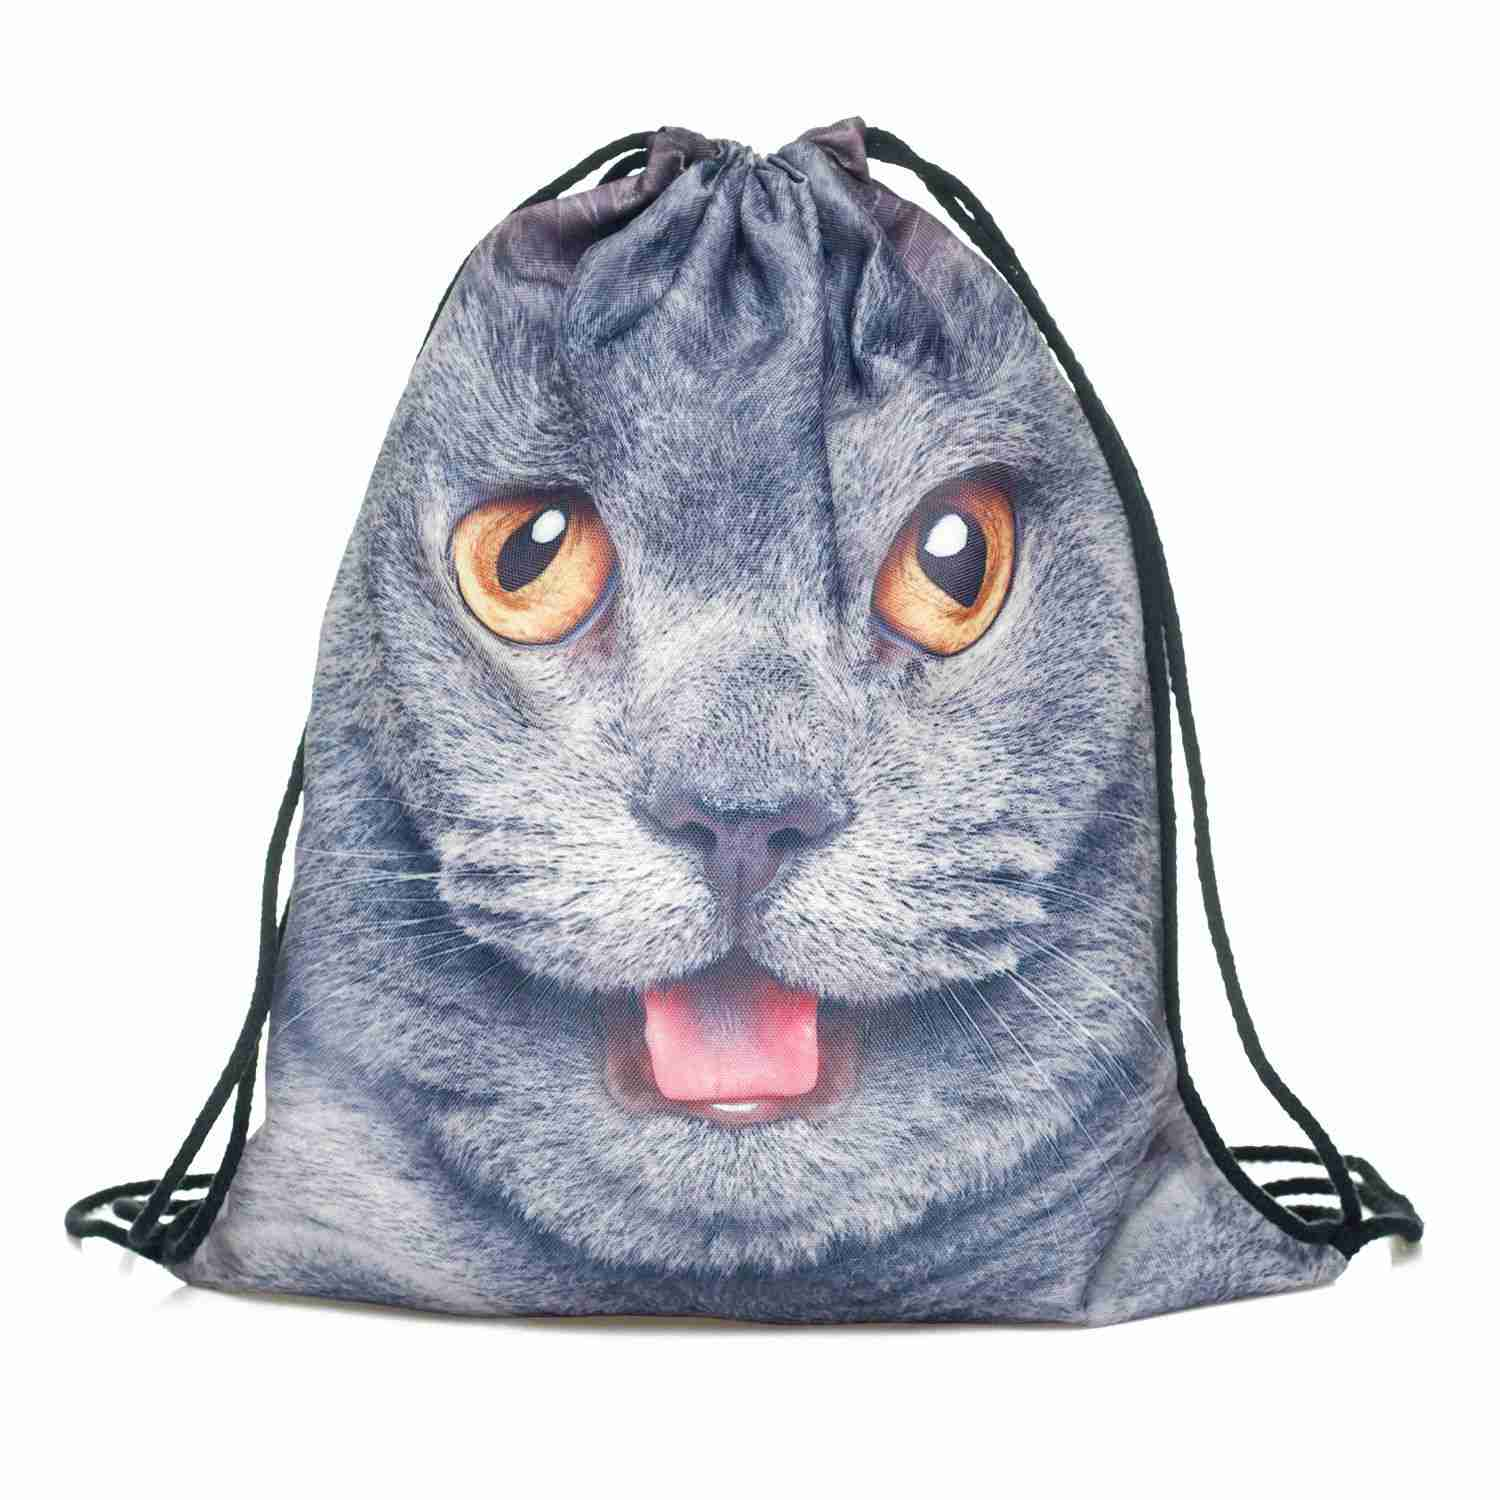 LJL Mens Womens Kids bag Teenage Drawstring Bag Shoulder School Backpack Rucksack Handbag String Travel Gym(cat)